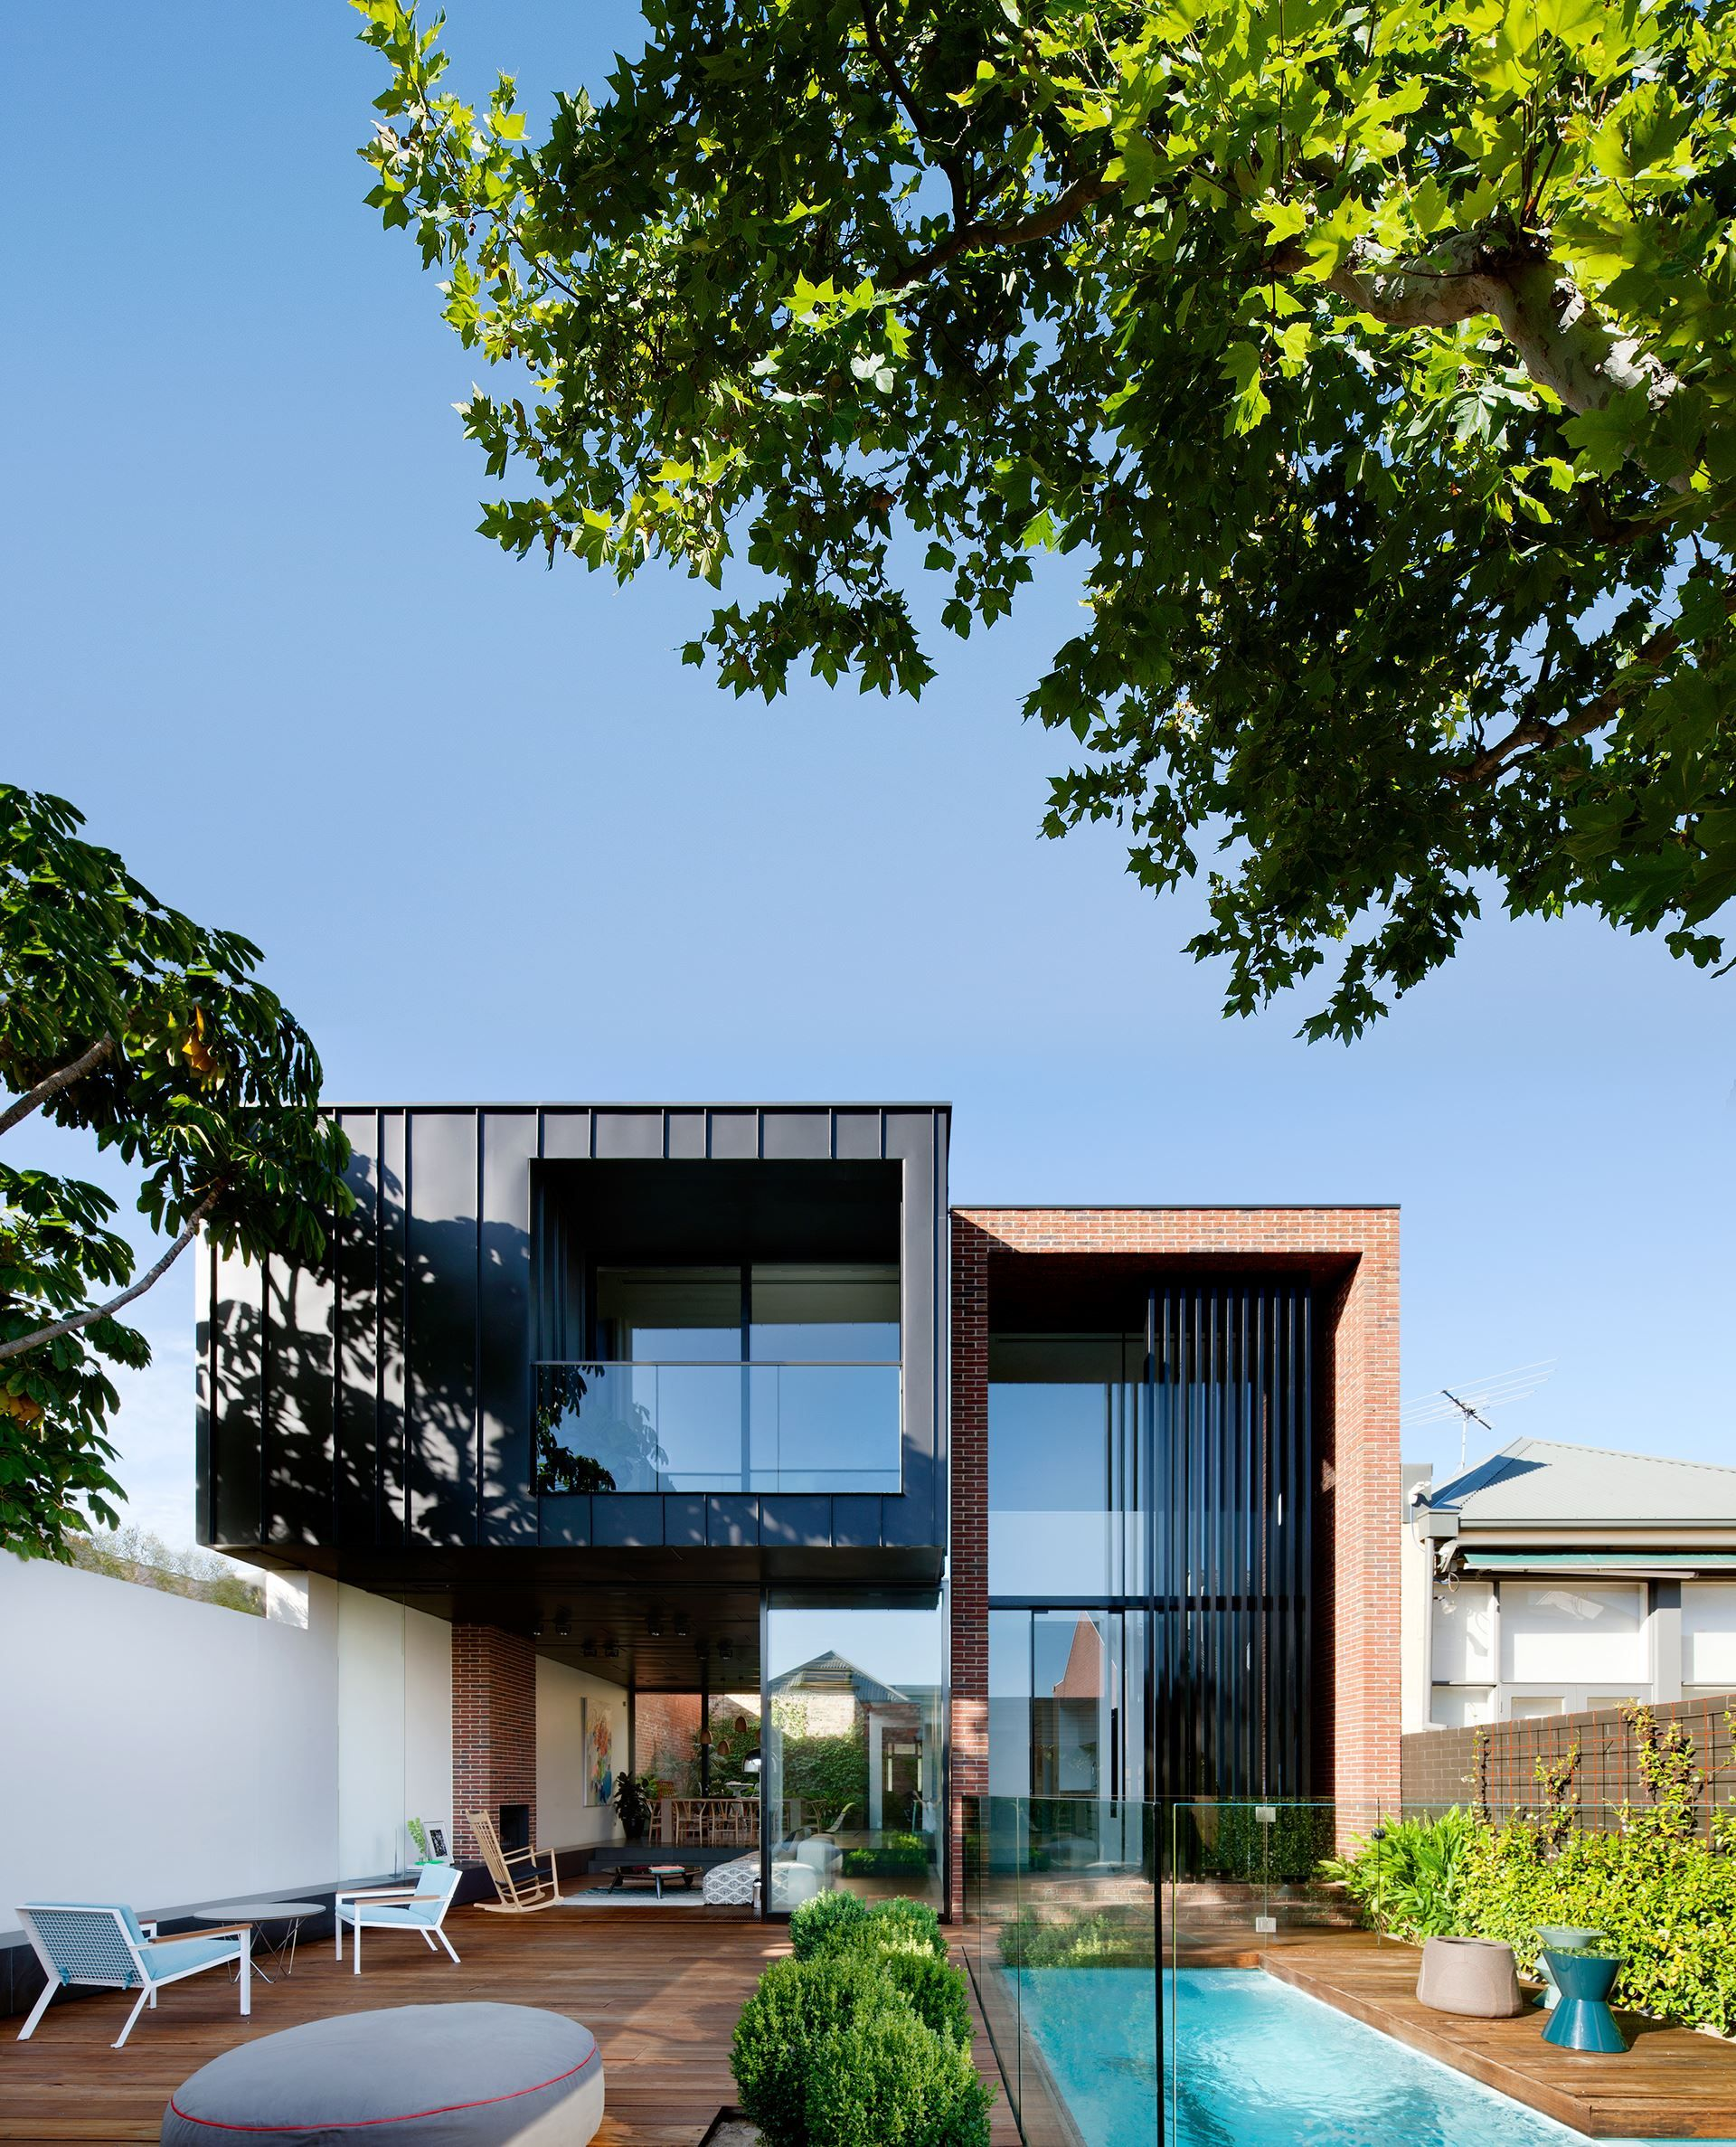 The ultra-modern addition at the rear of the house belies its 19th ...